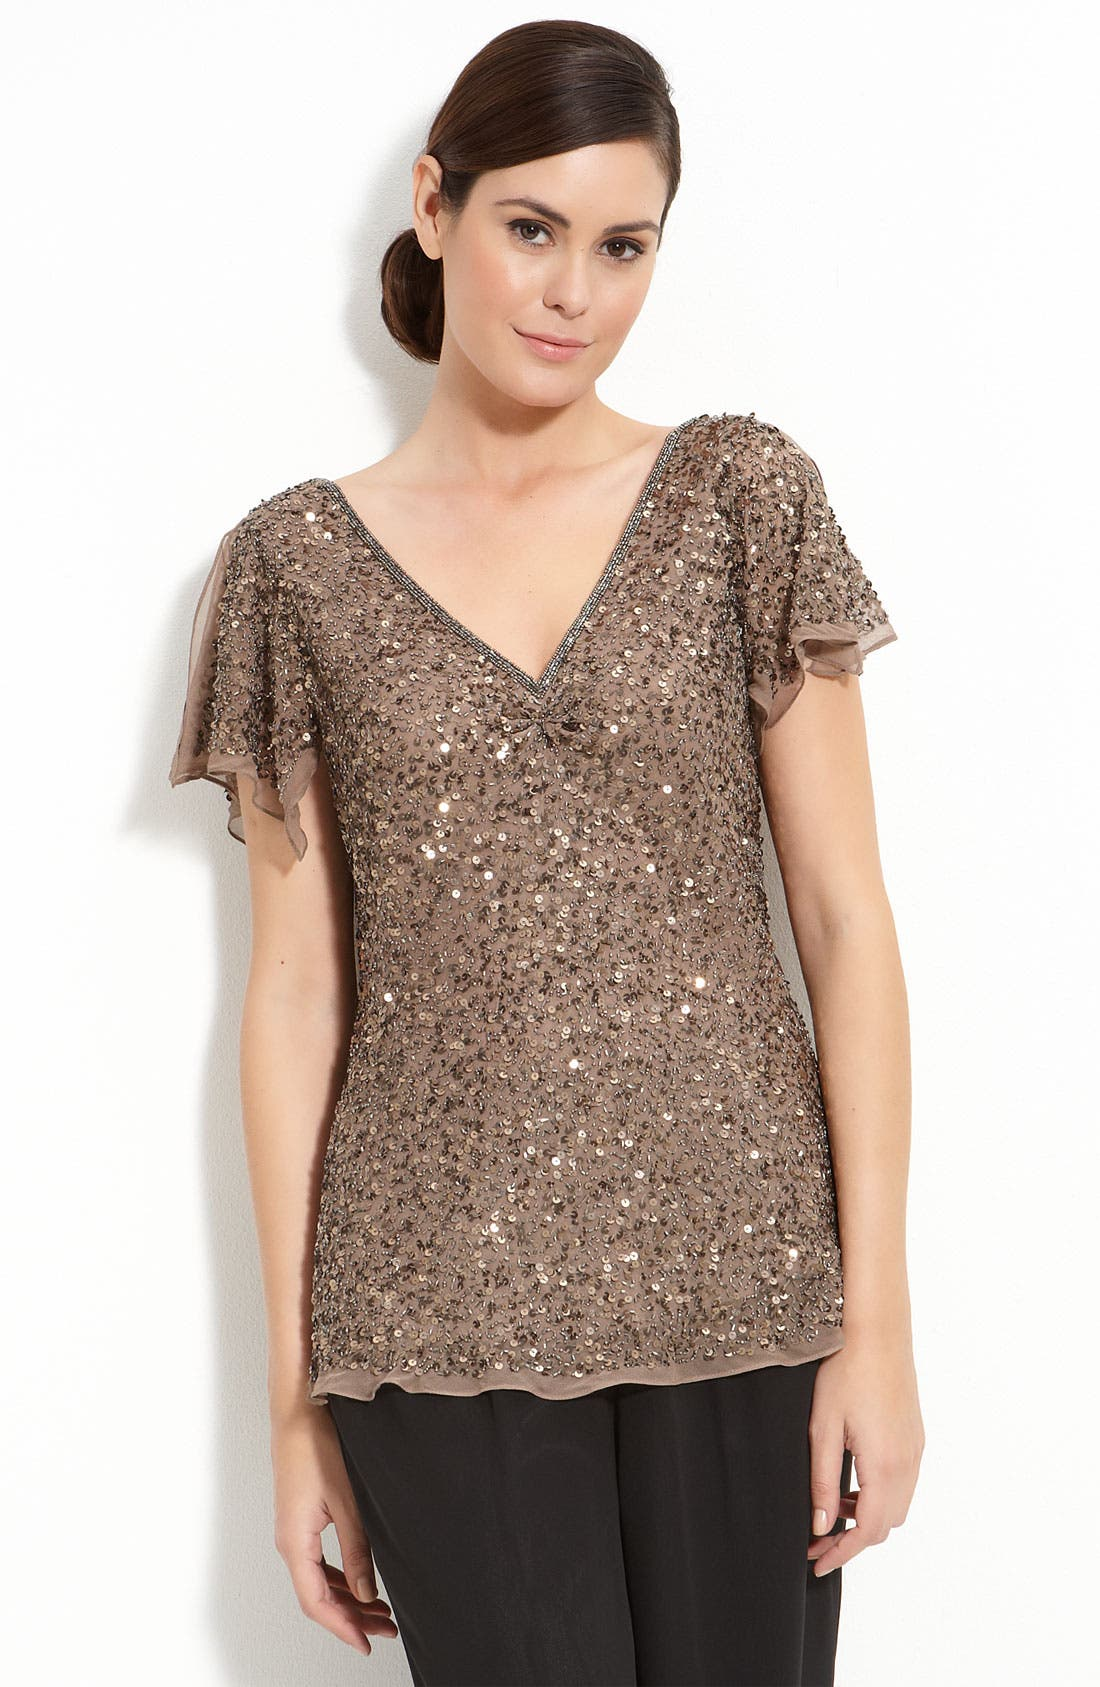 Alternate Image 1 Selected - Adrianna Papell 'Dazzling Winds' Sequin Top